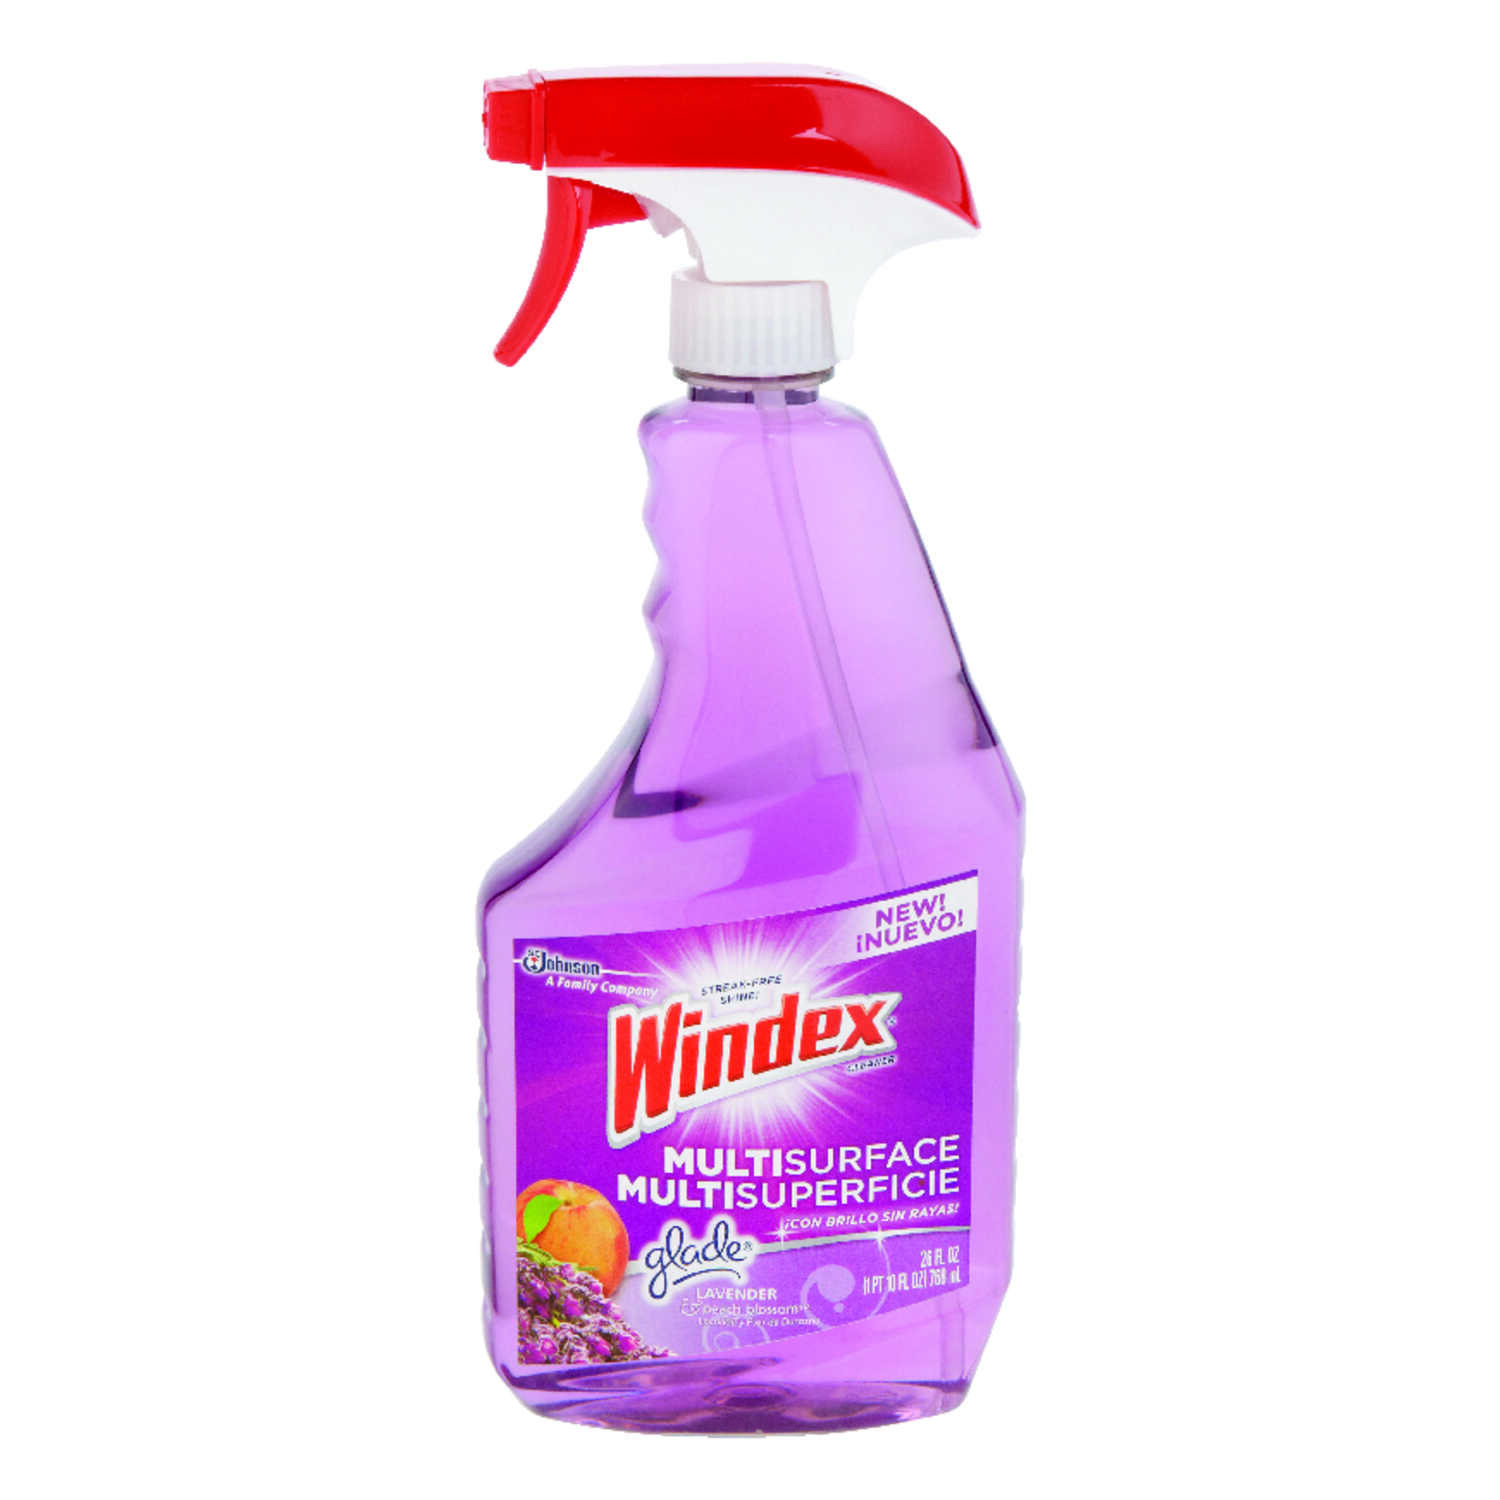 Windex  Glade  Lavender and Peach Blossom Scent All Purpose Cleaner  23 oz. Liquid  For Multi-Surfac